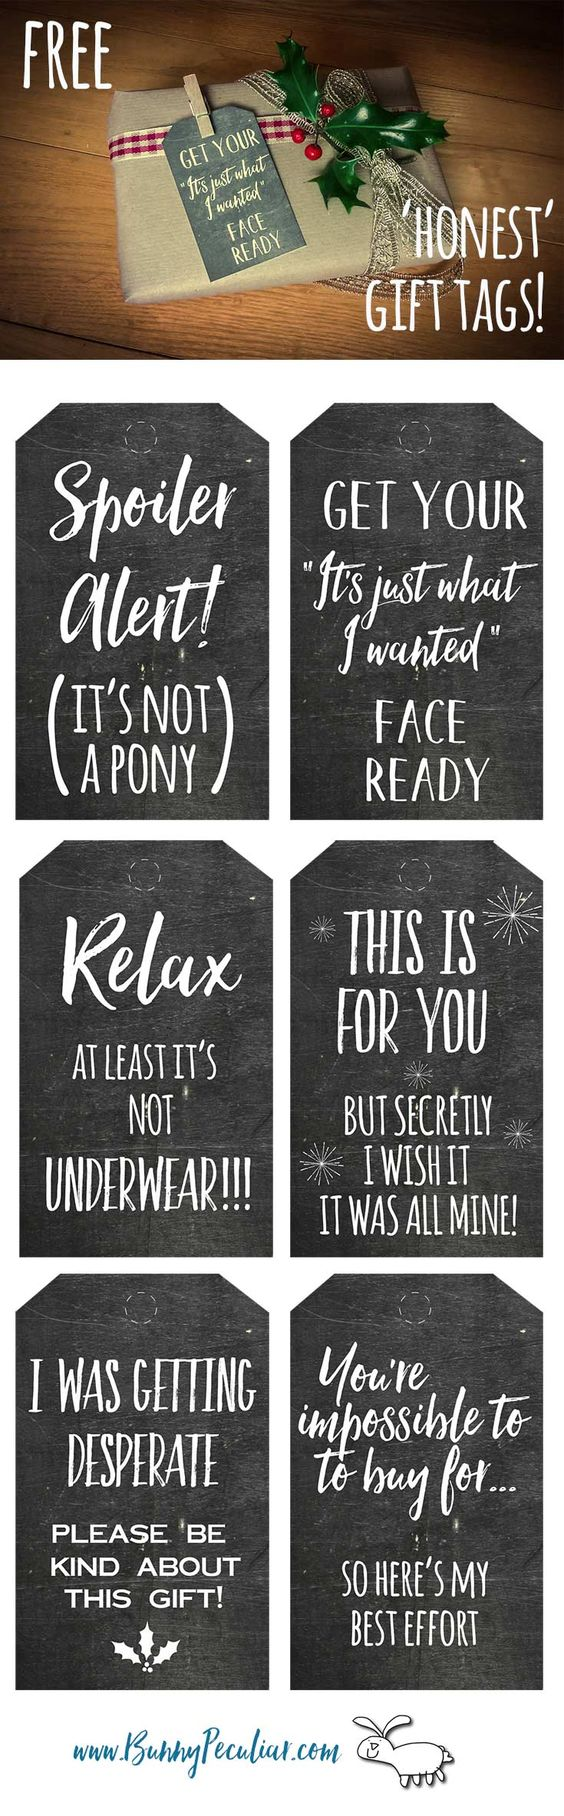 The best do it yourself gifts fun clever and unique diy craft honest and funny printable chalkboard gift tags so cute and hilarious free printables solutioingenieria